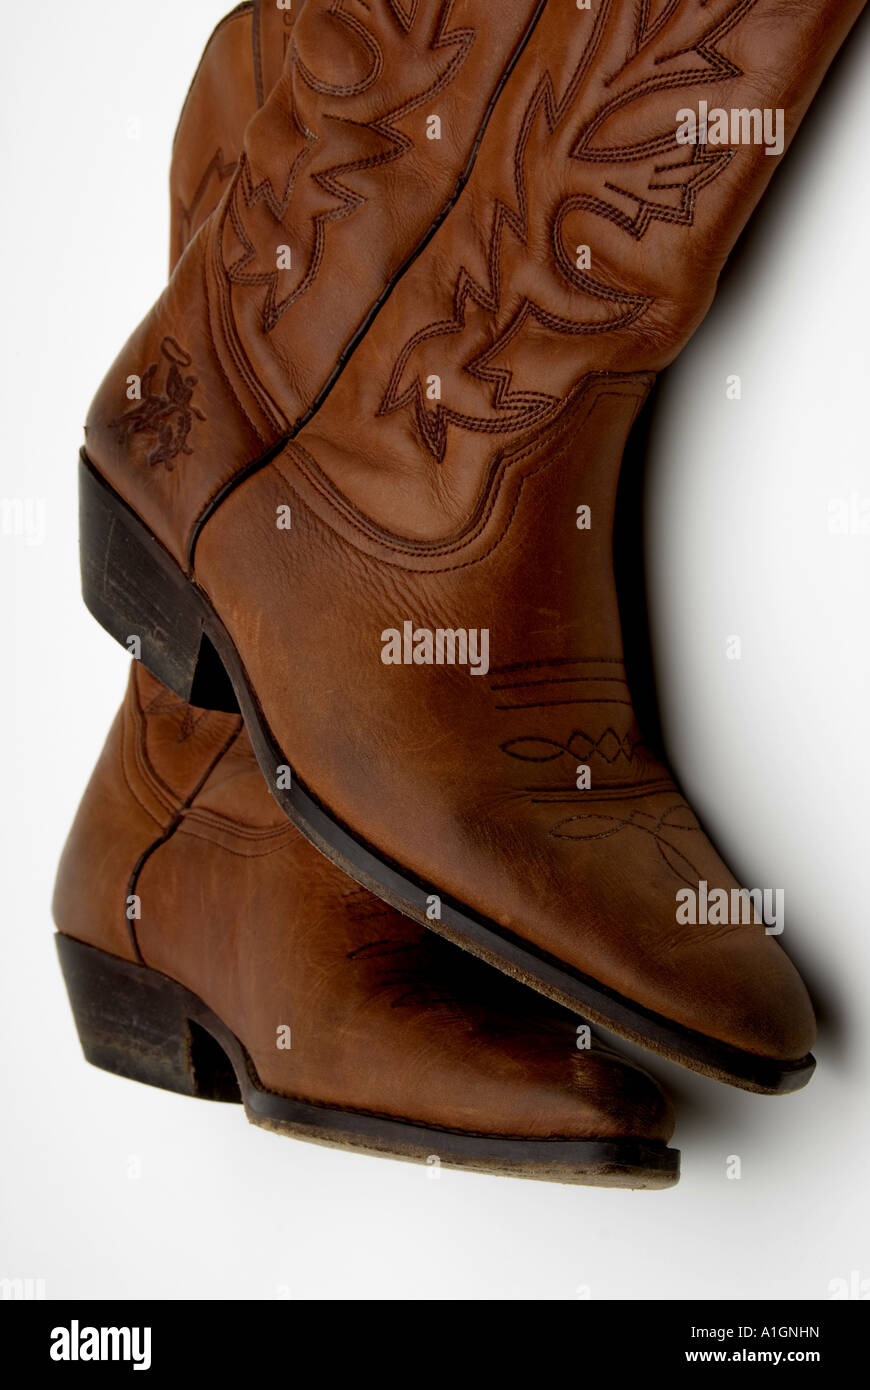 f0321fc79fc Worn Pair of old cowboy boots, close up Stock Photo: 10255712 - Alamy